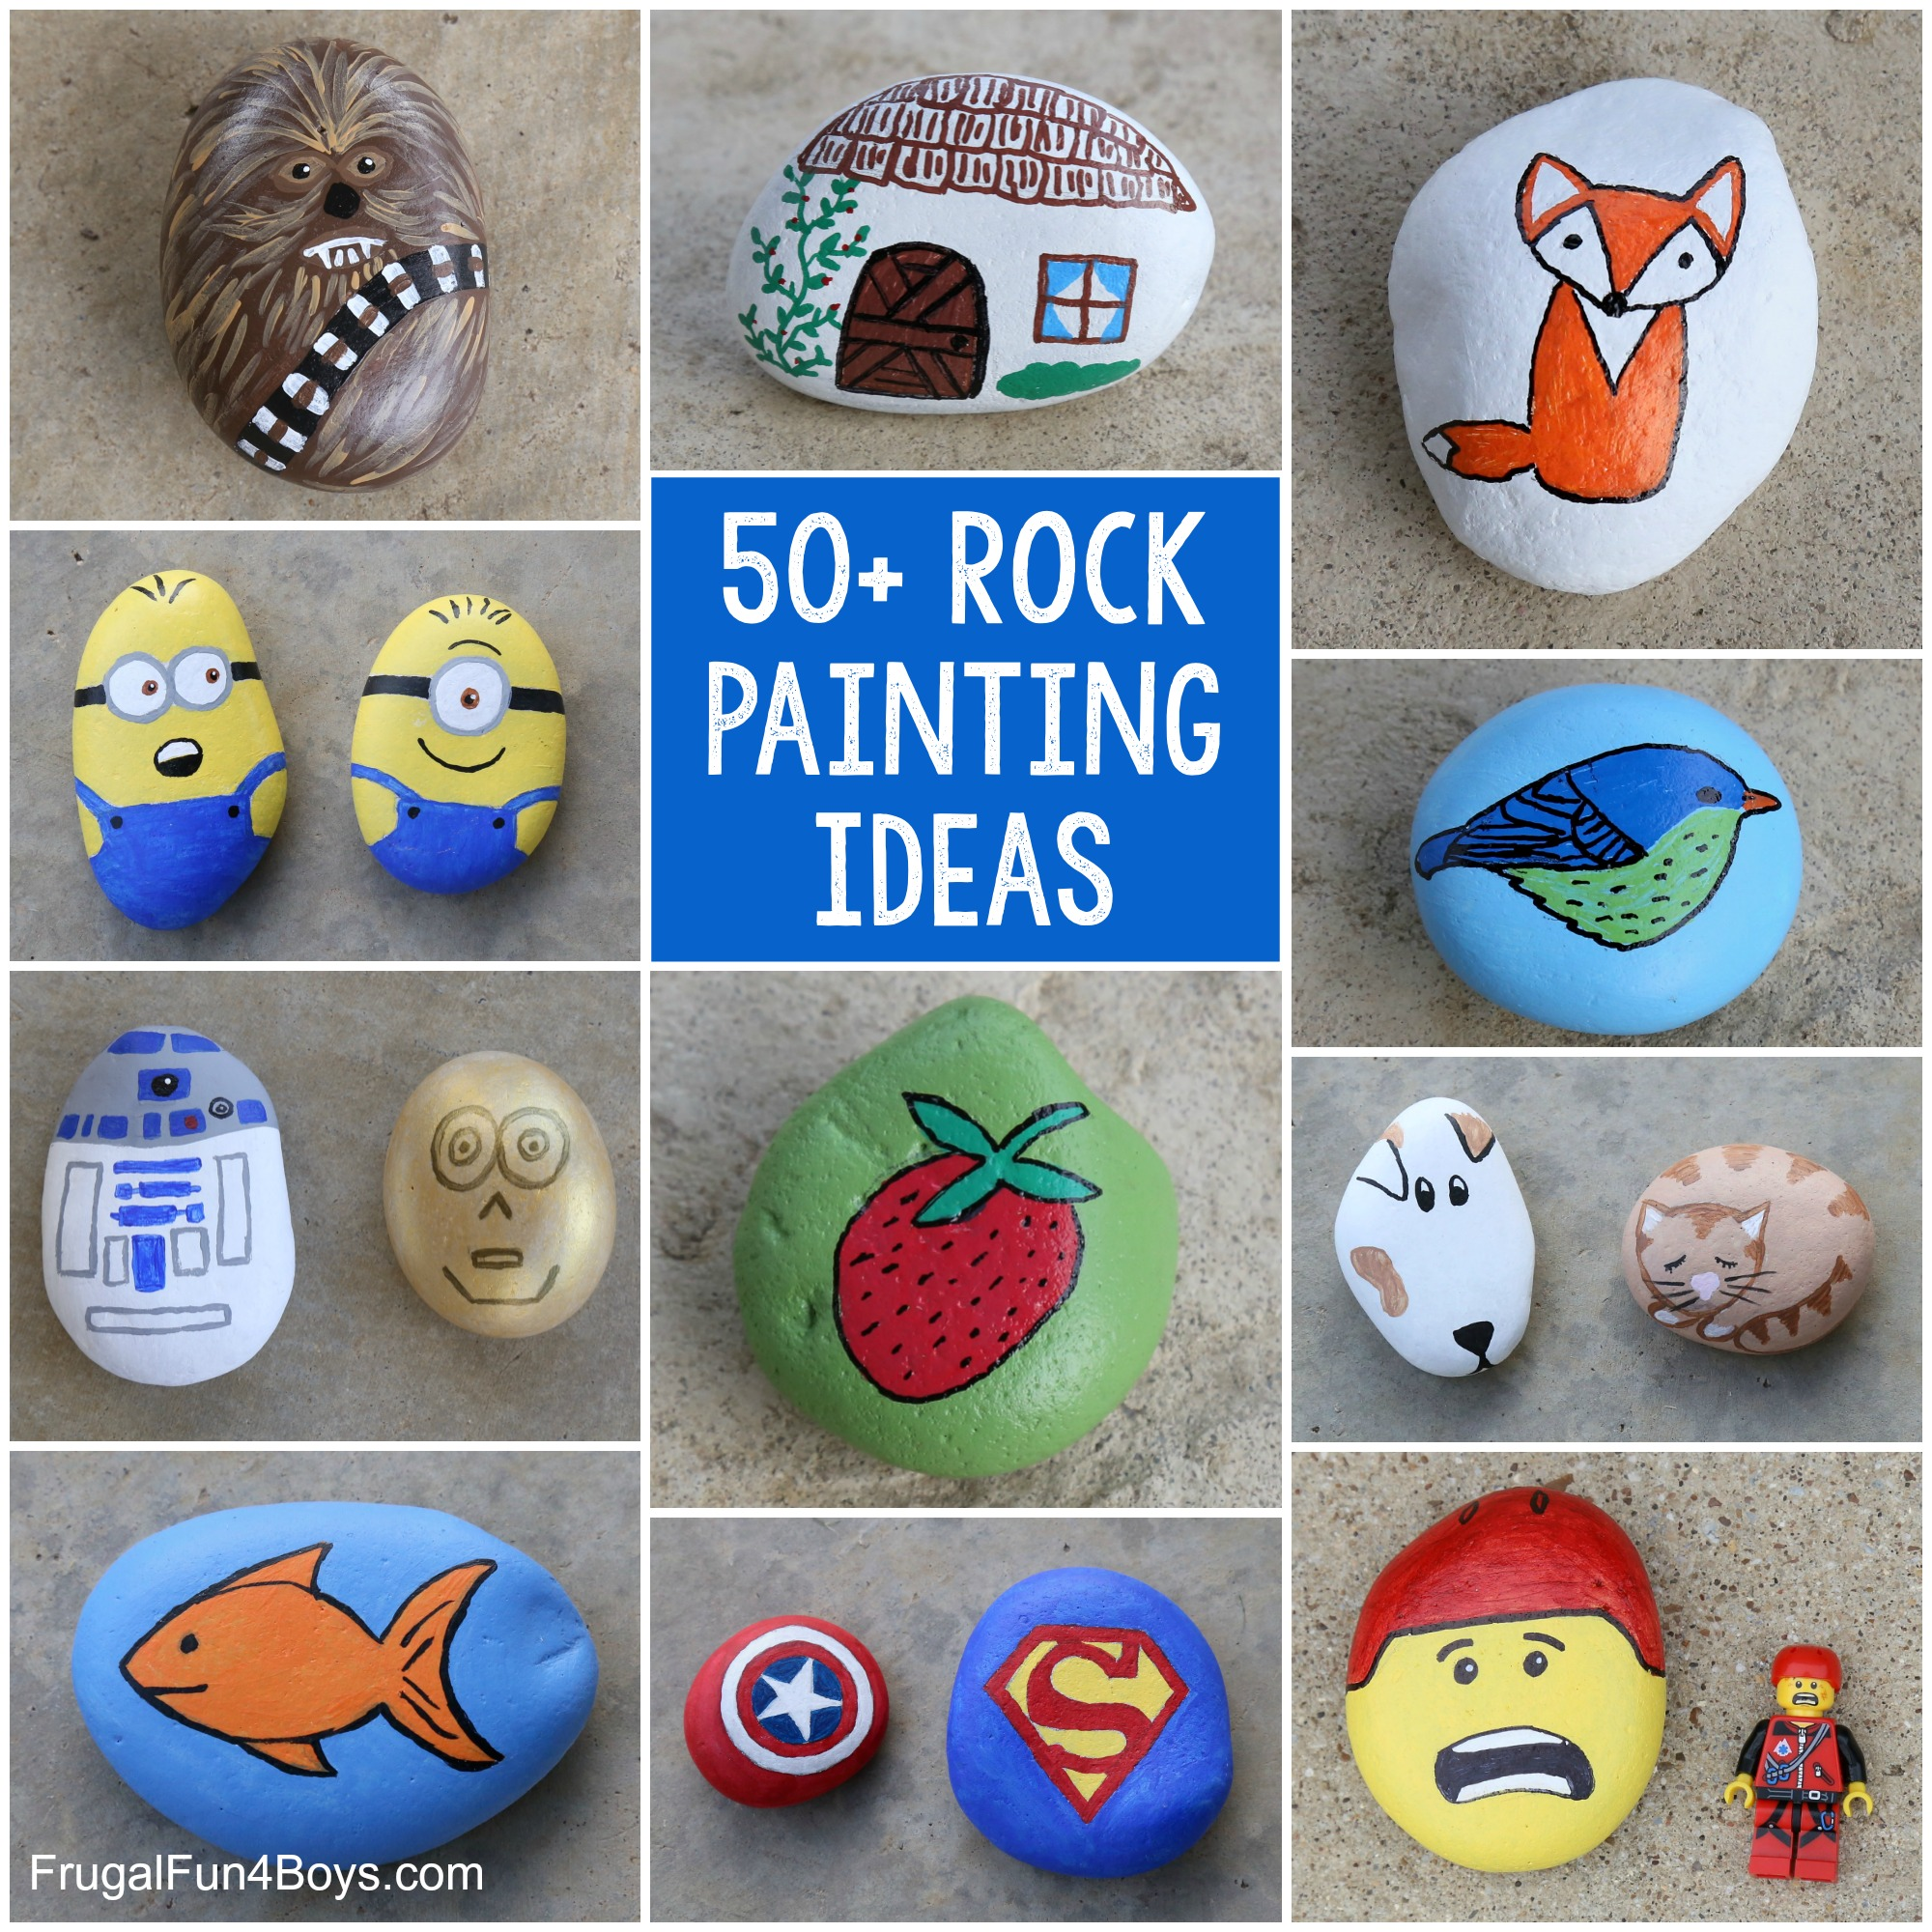 Rock Painting Ideas for Kids